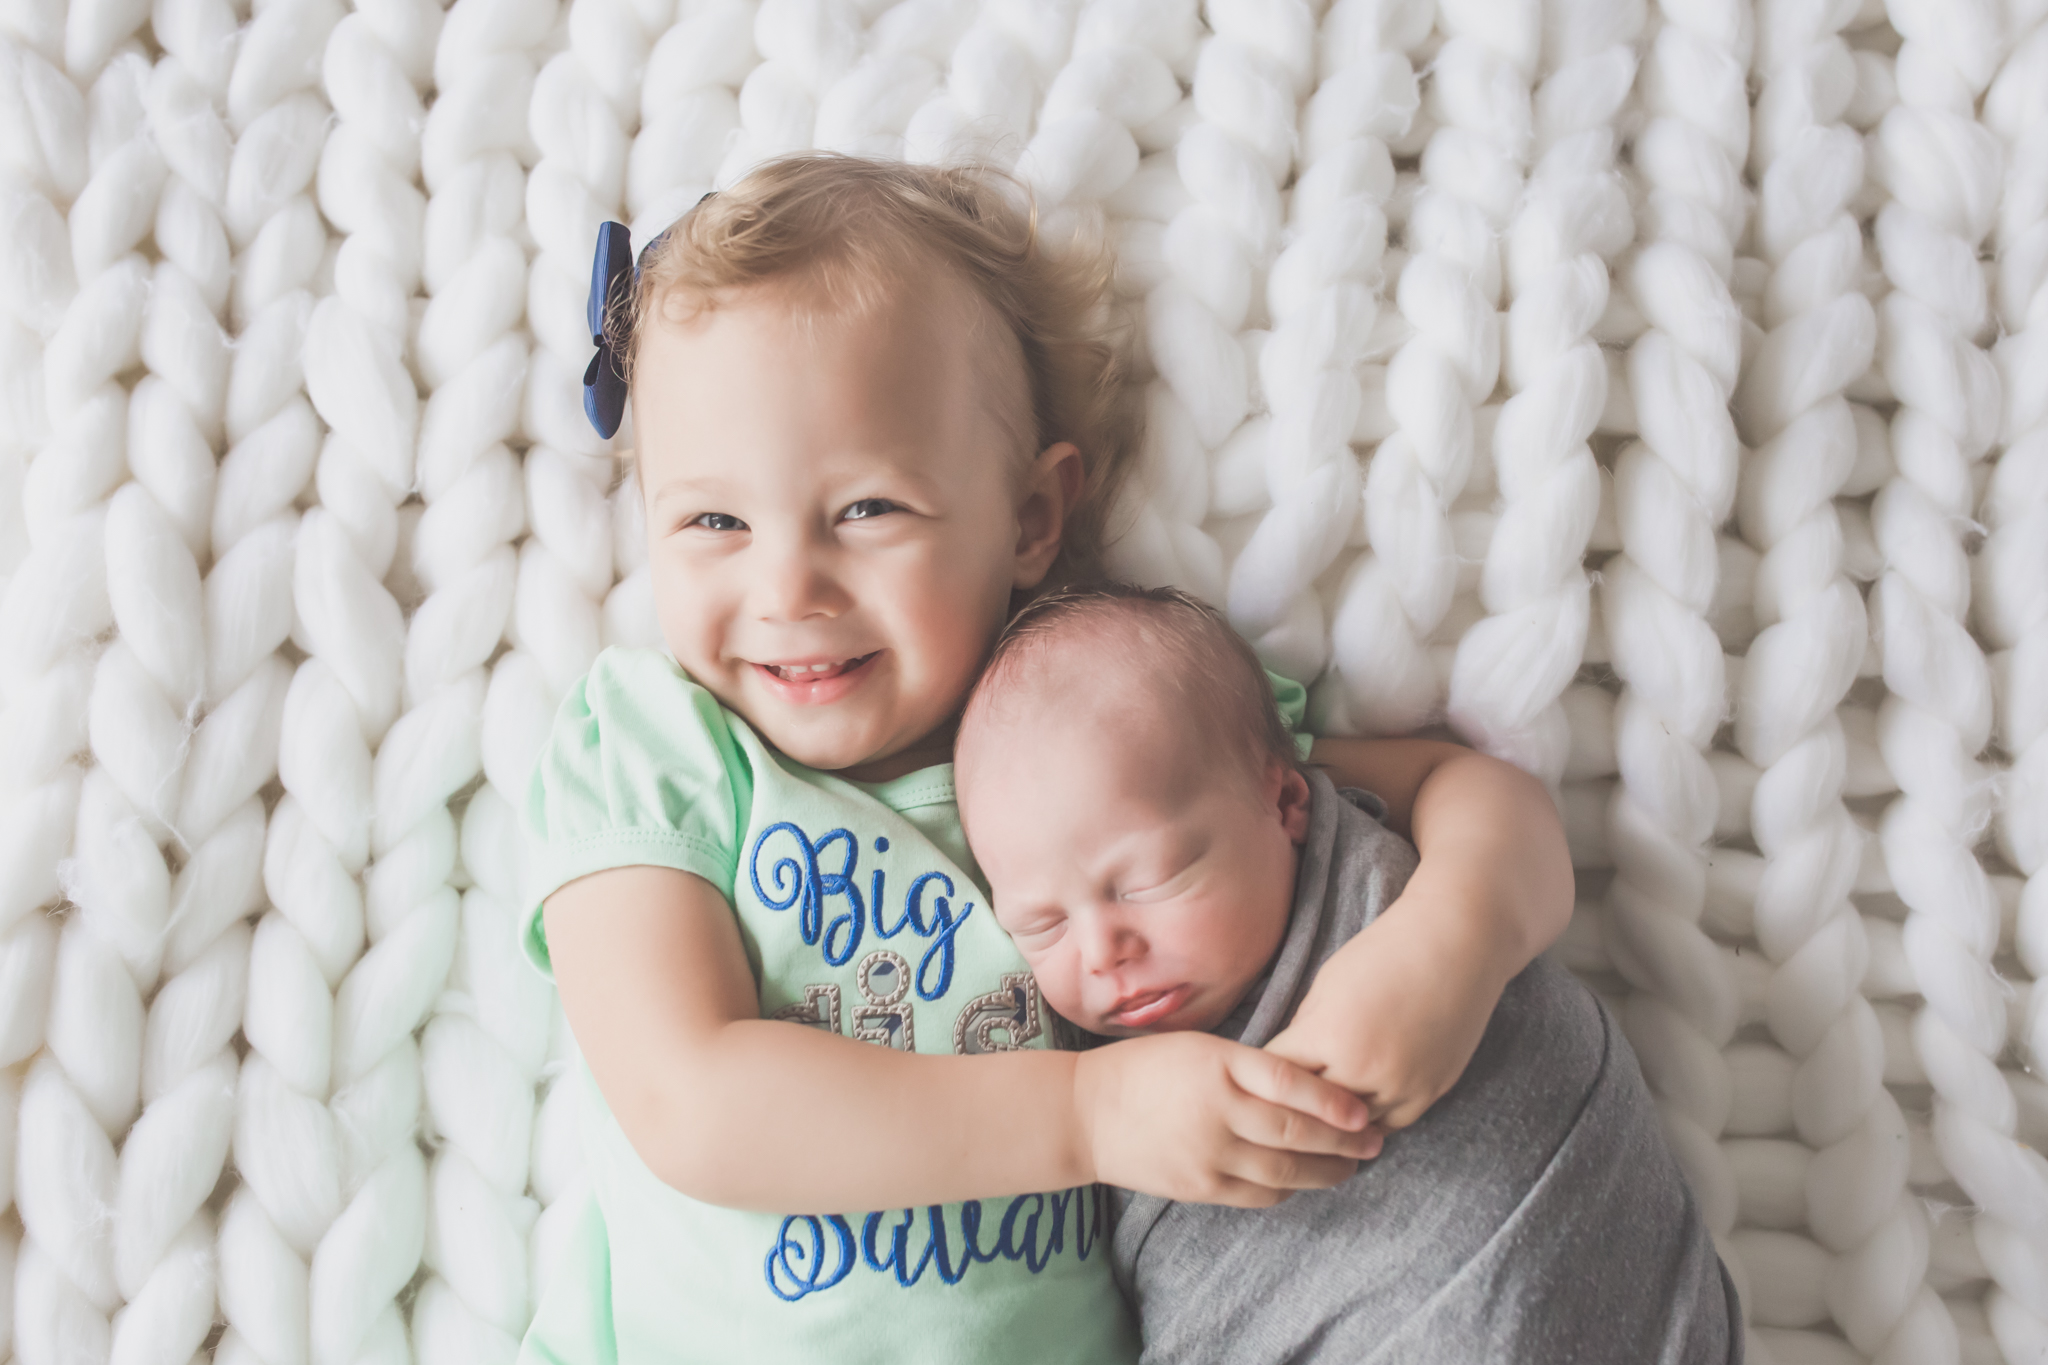 Sibling photos Newborn session photographer lifestyle studio - Cara Peterson Photography Rockford IL-1-8.jpg